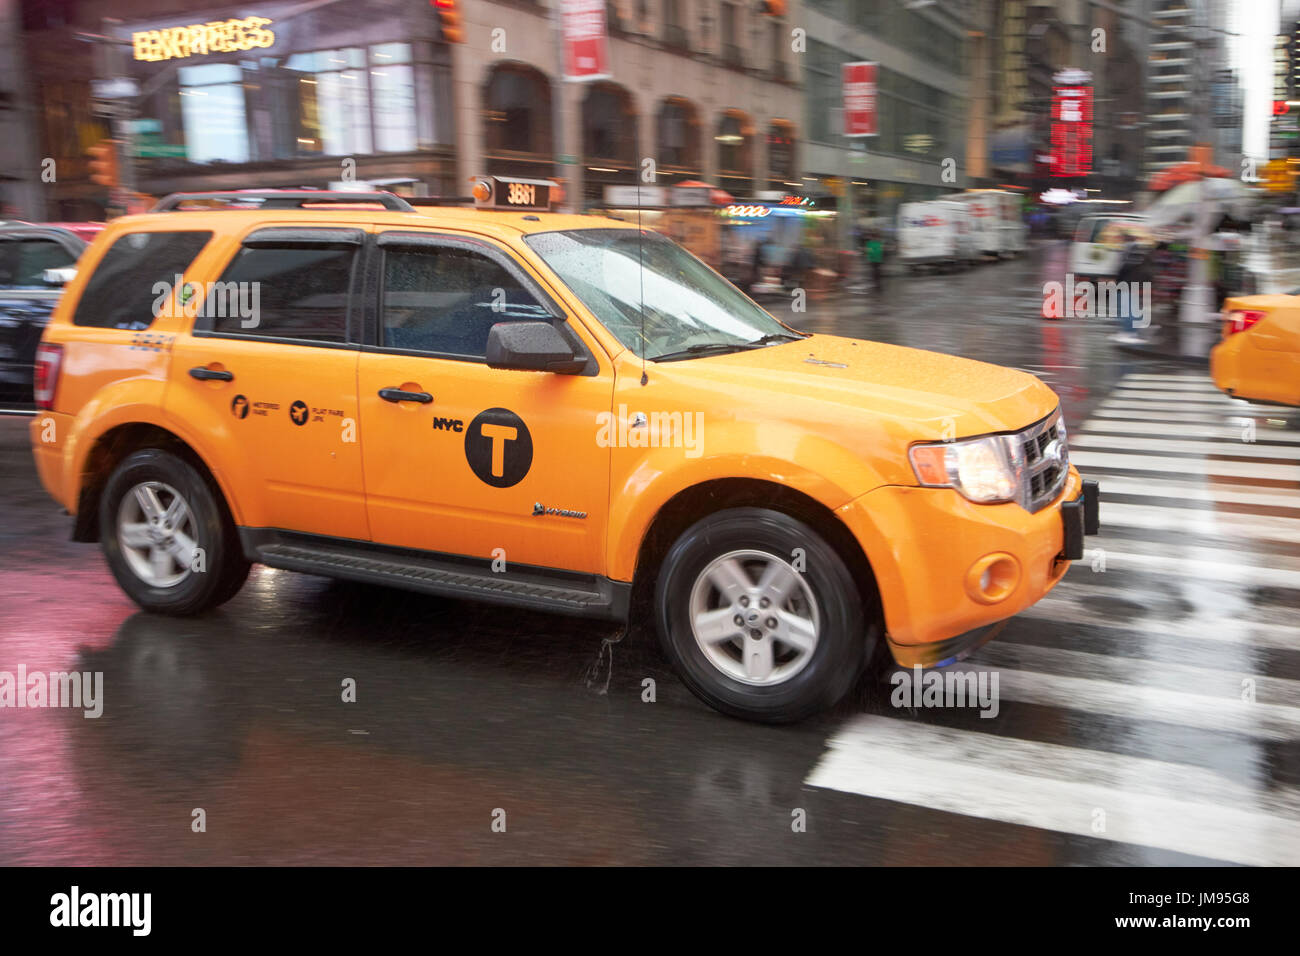 Ford escape hybrid suv new york yellow taxi cab crossing times square in the rain new york city usa